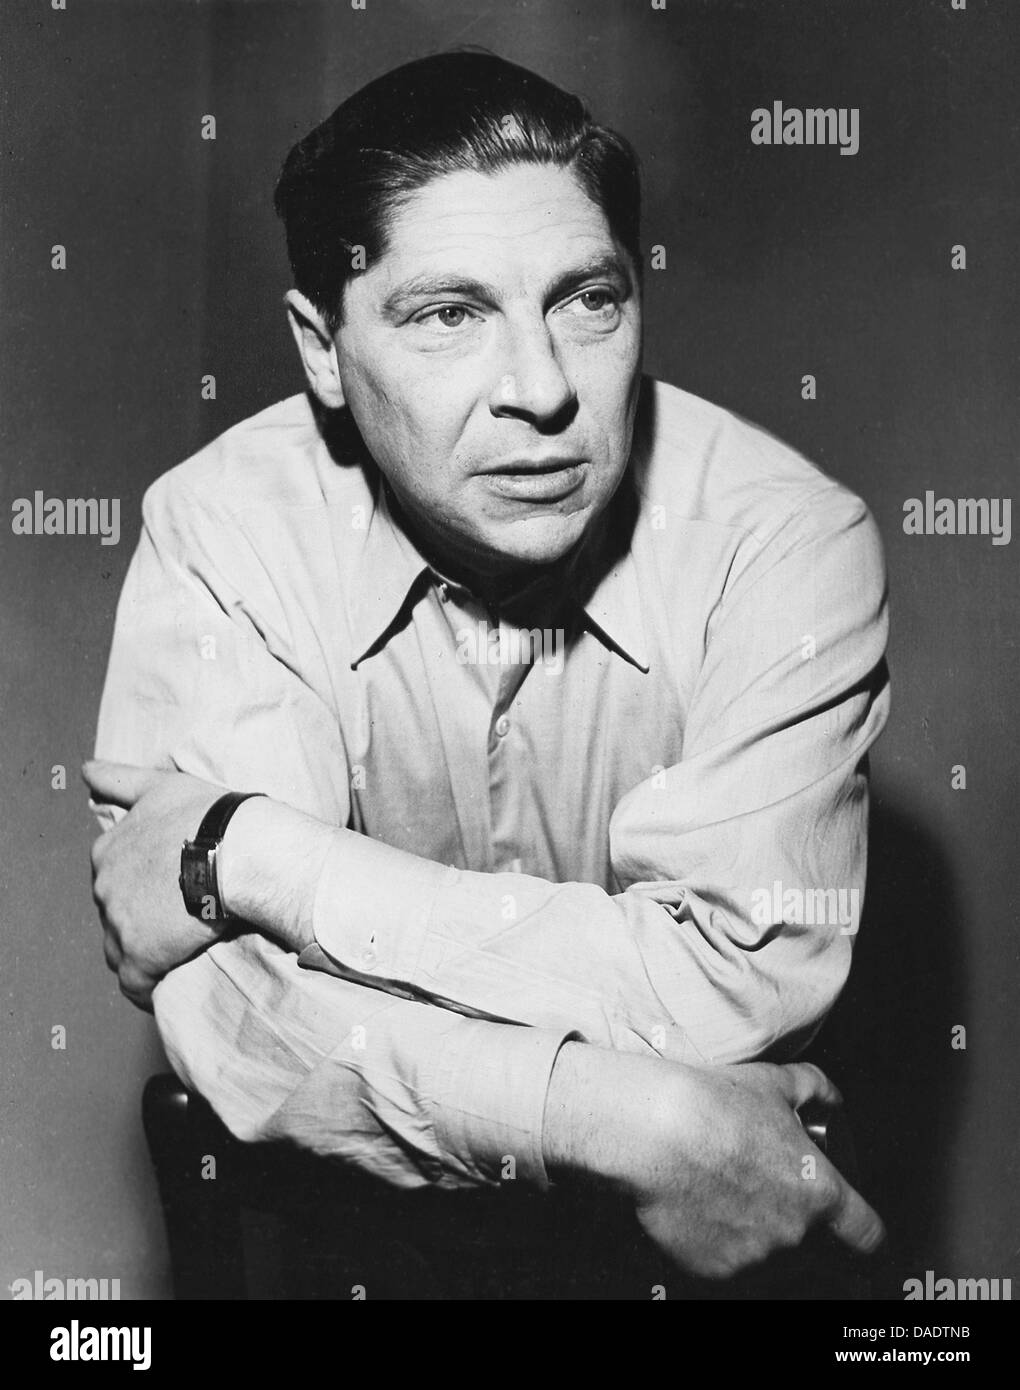 Author Arthur Koestler in the 1960th. Portrait by photographer Fred Stein (1909-1967) who emigrated 1933 from Nazi Stock Photo